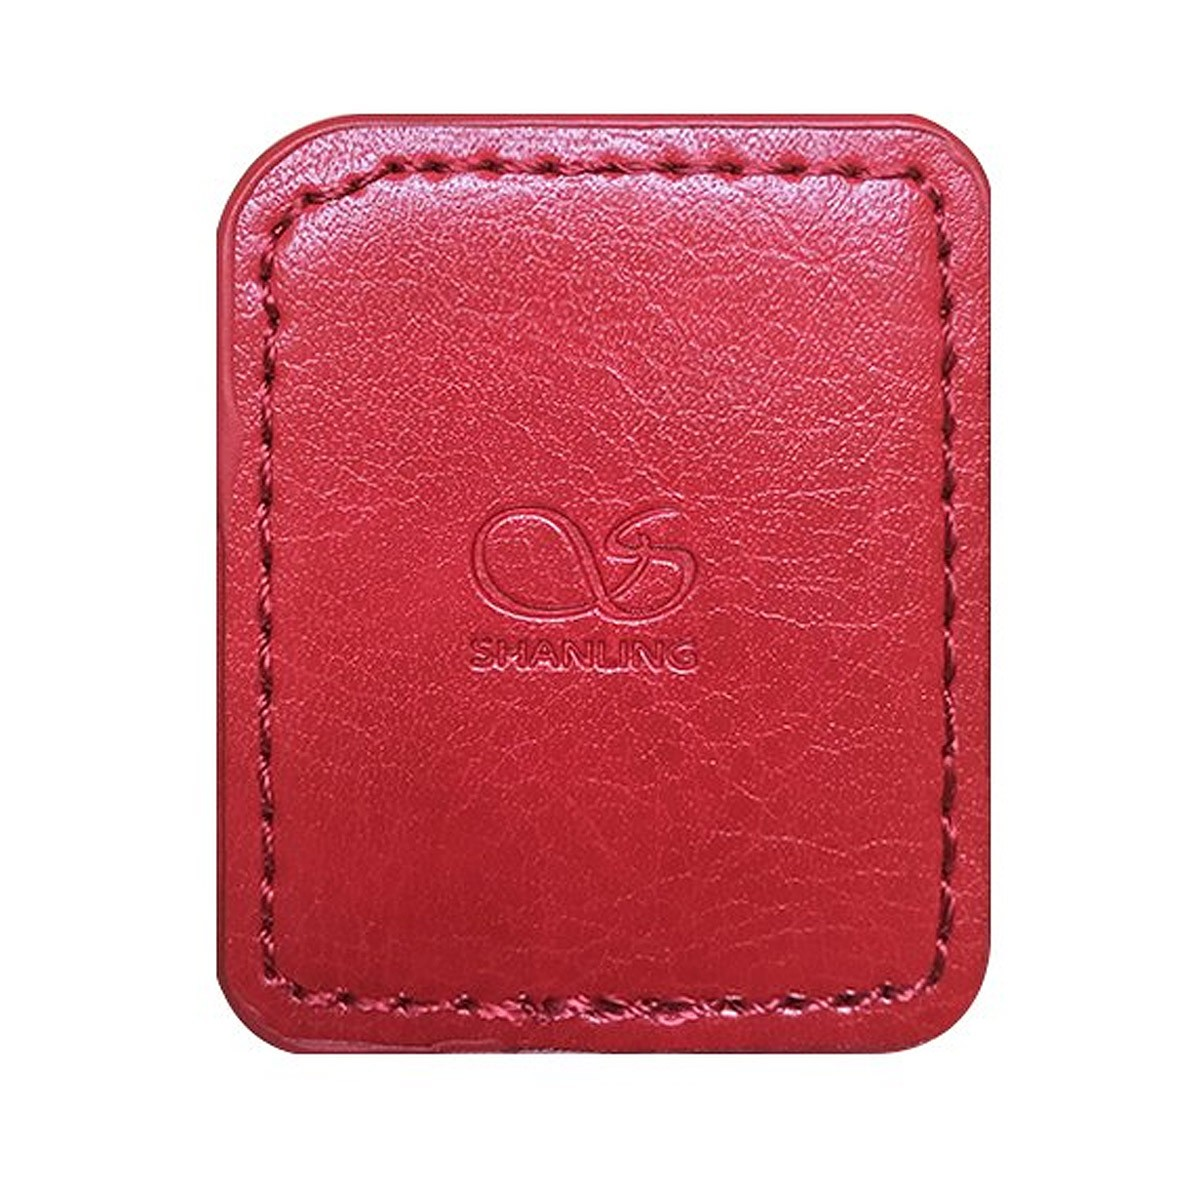 SHANLING Leather Protective Cover for Shanling M0 DAP Red